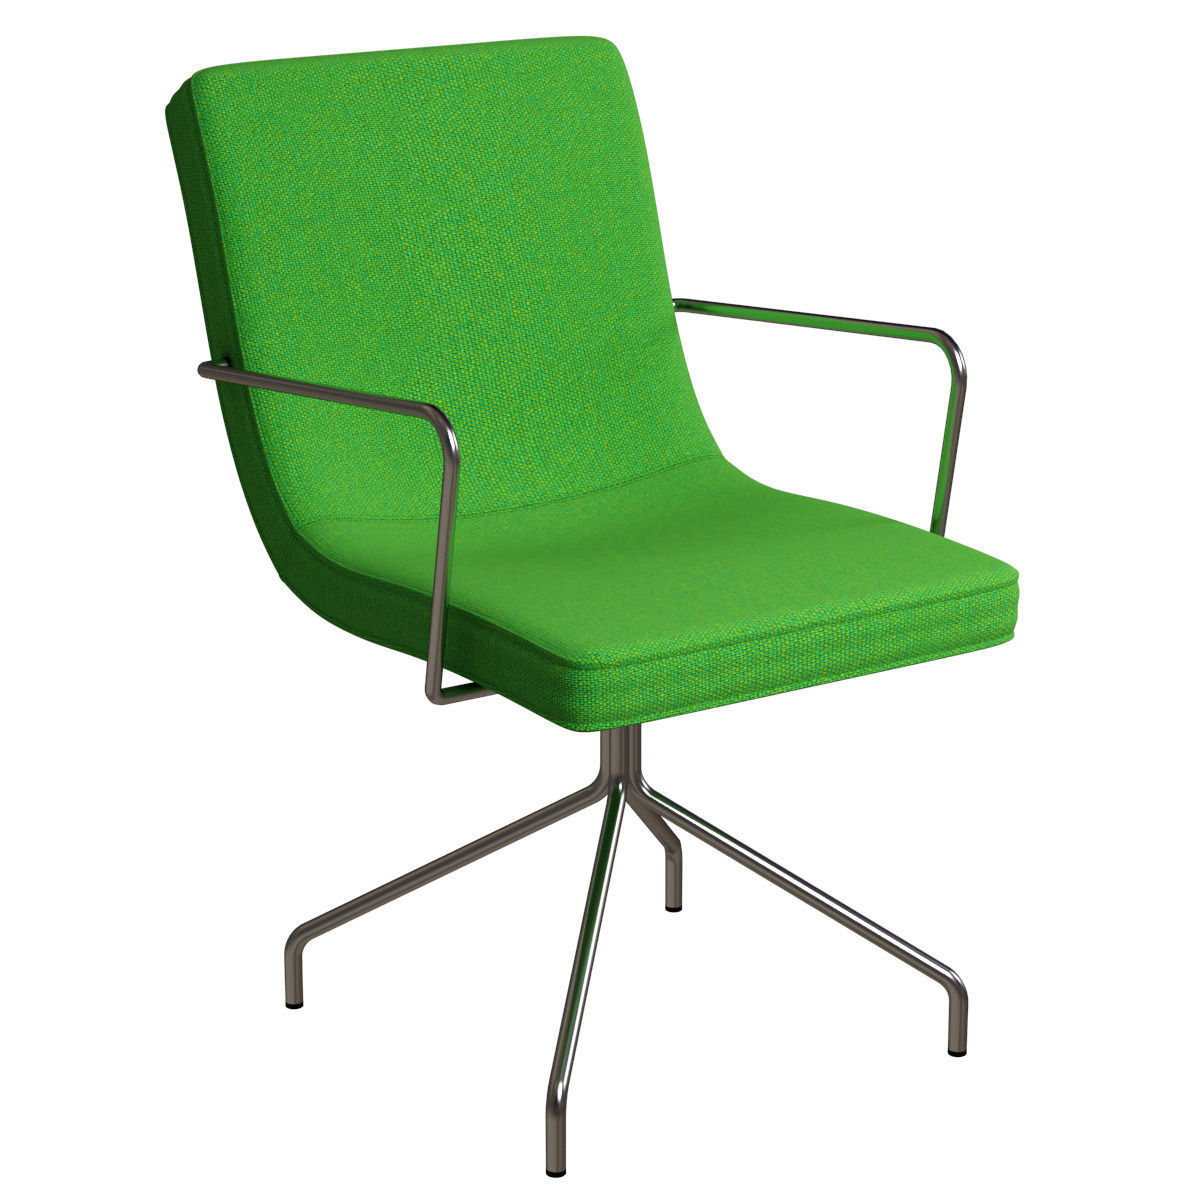 Chair BOND by OFFECCT